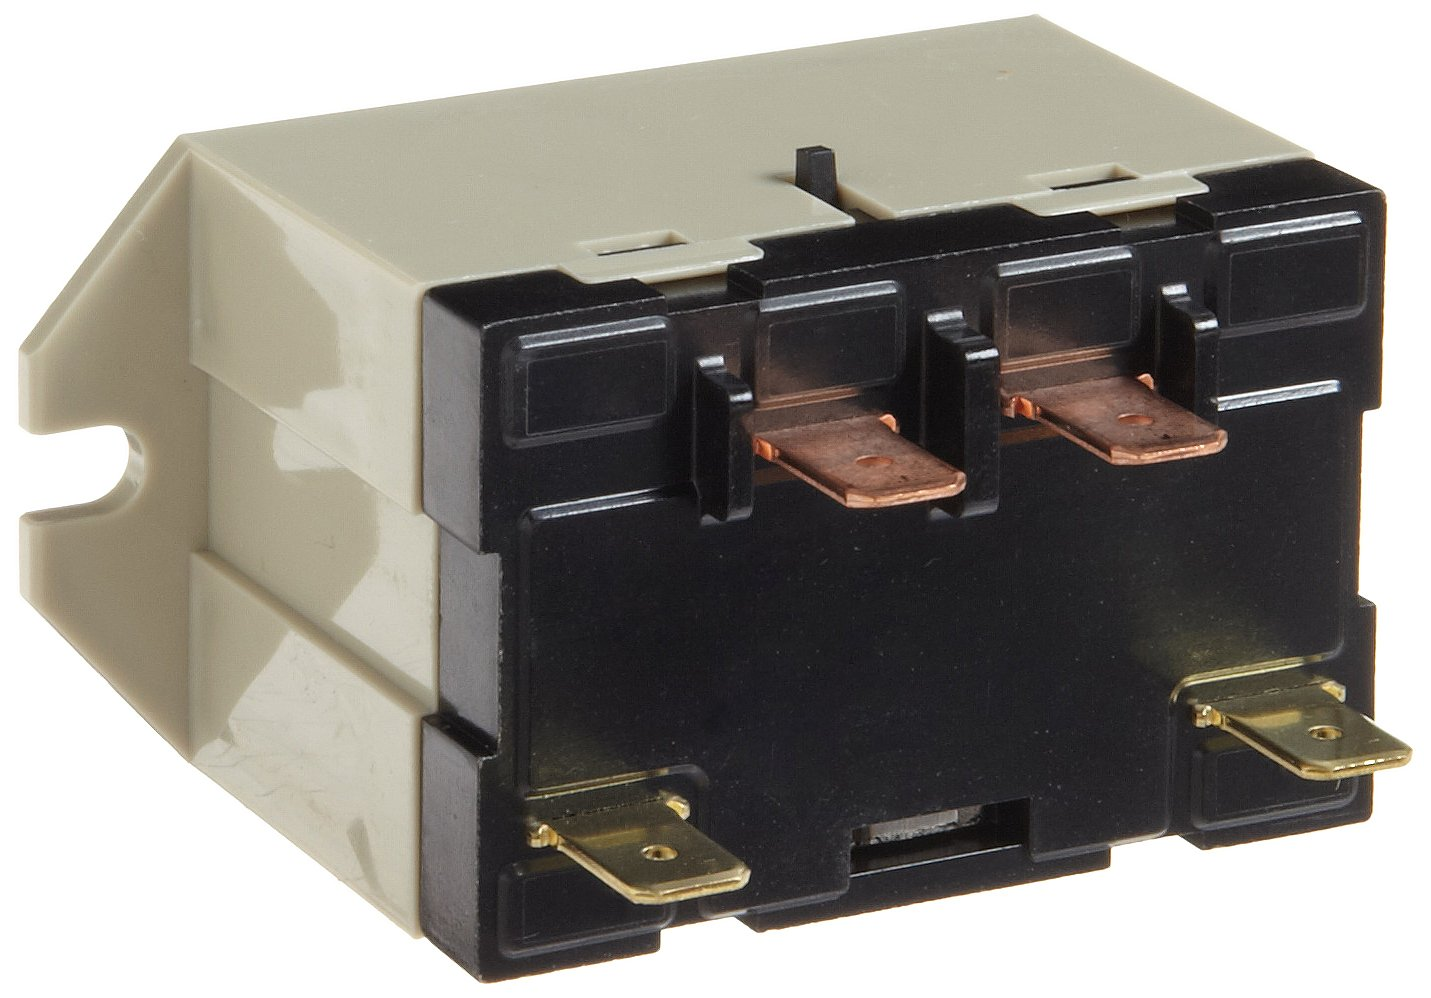 Omron G7L-1A-TUB-J-CB-DC12 General Purpose Relay With Test Button, Class B Insulation, QuickConnect Terminal, Upper Bracket Mounting, Single Pole Single Throw Normally Open Contacts, 158 mA Rated Load Current, 12 VDC Rated Load Voltage